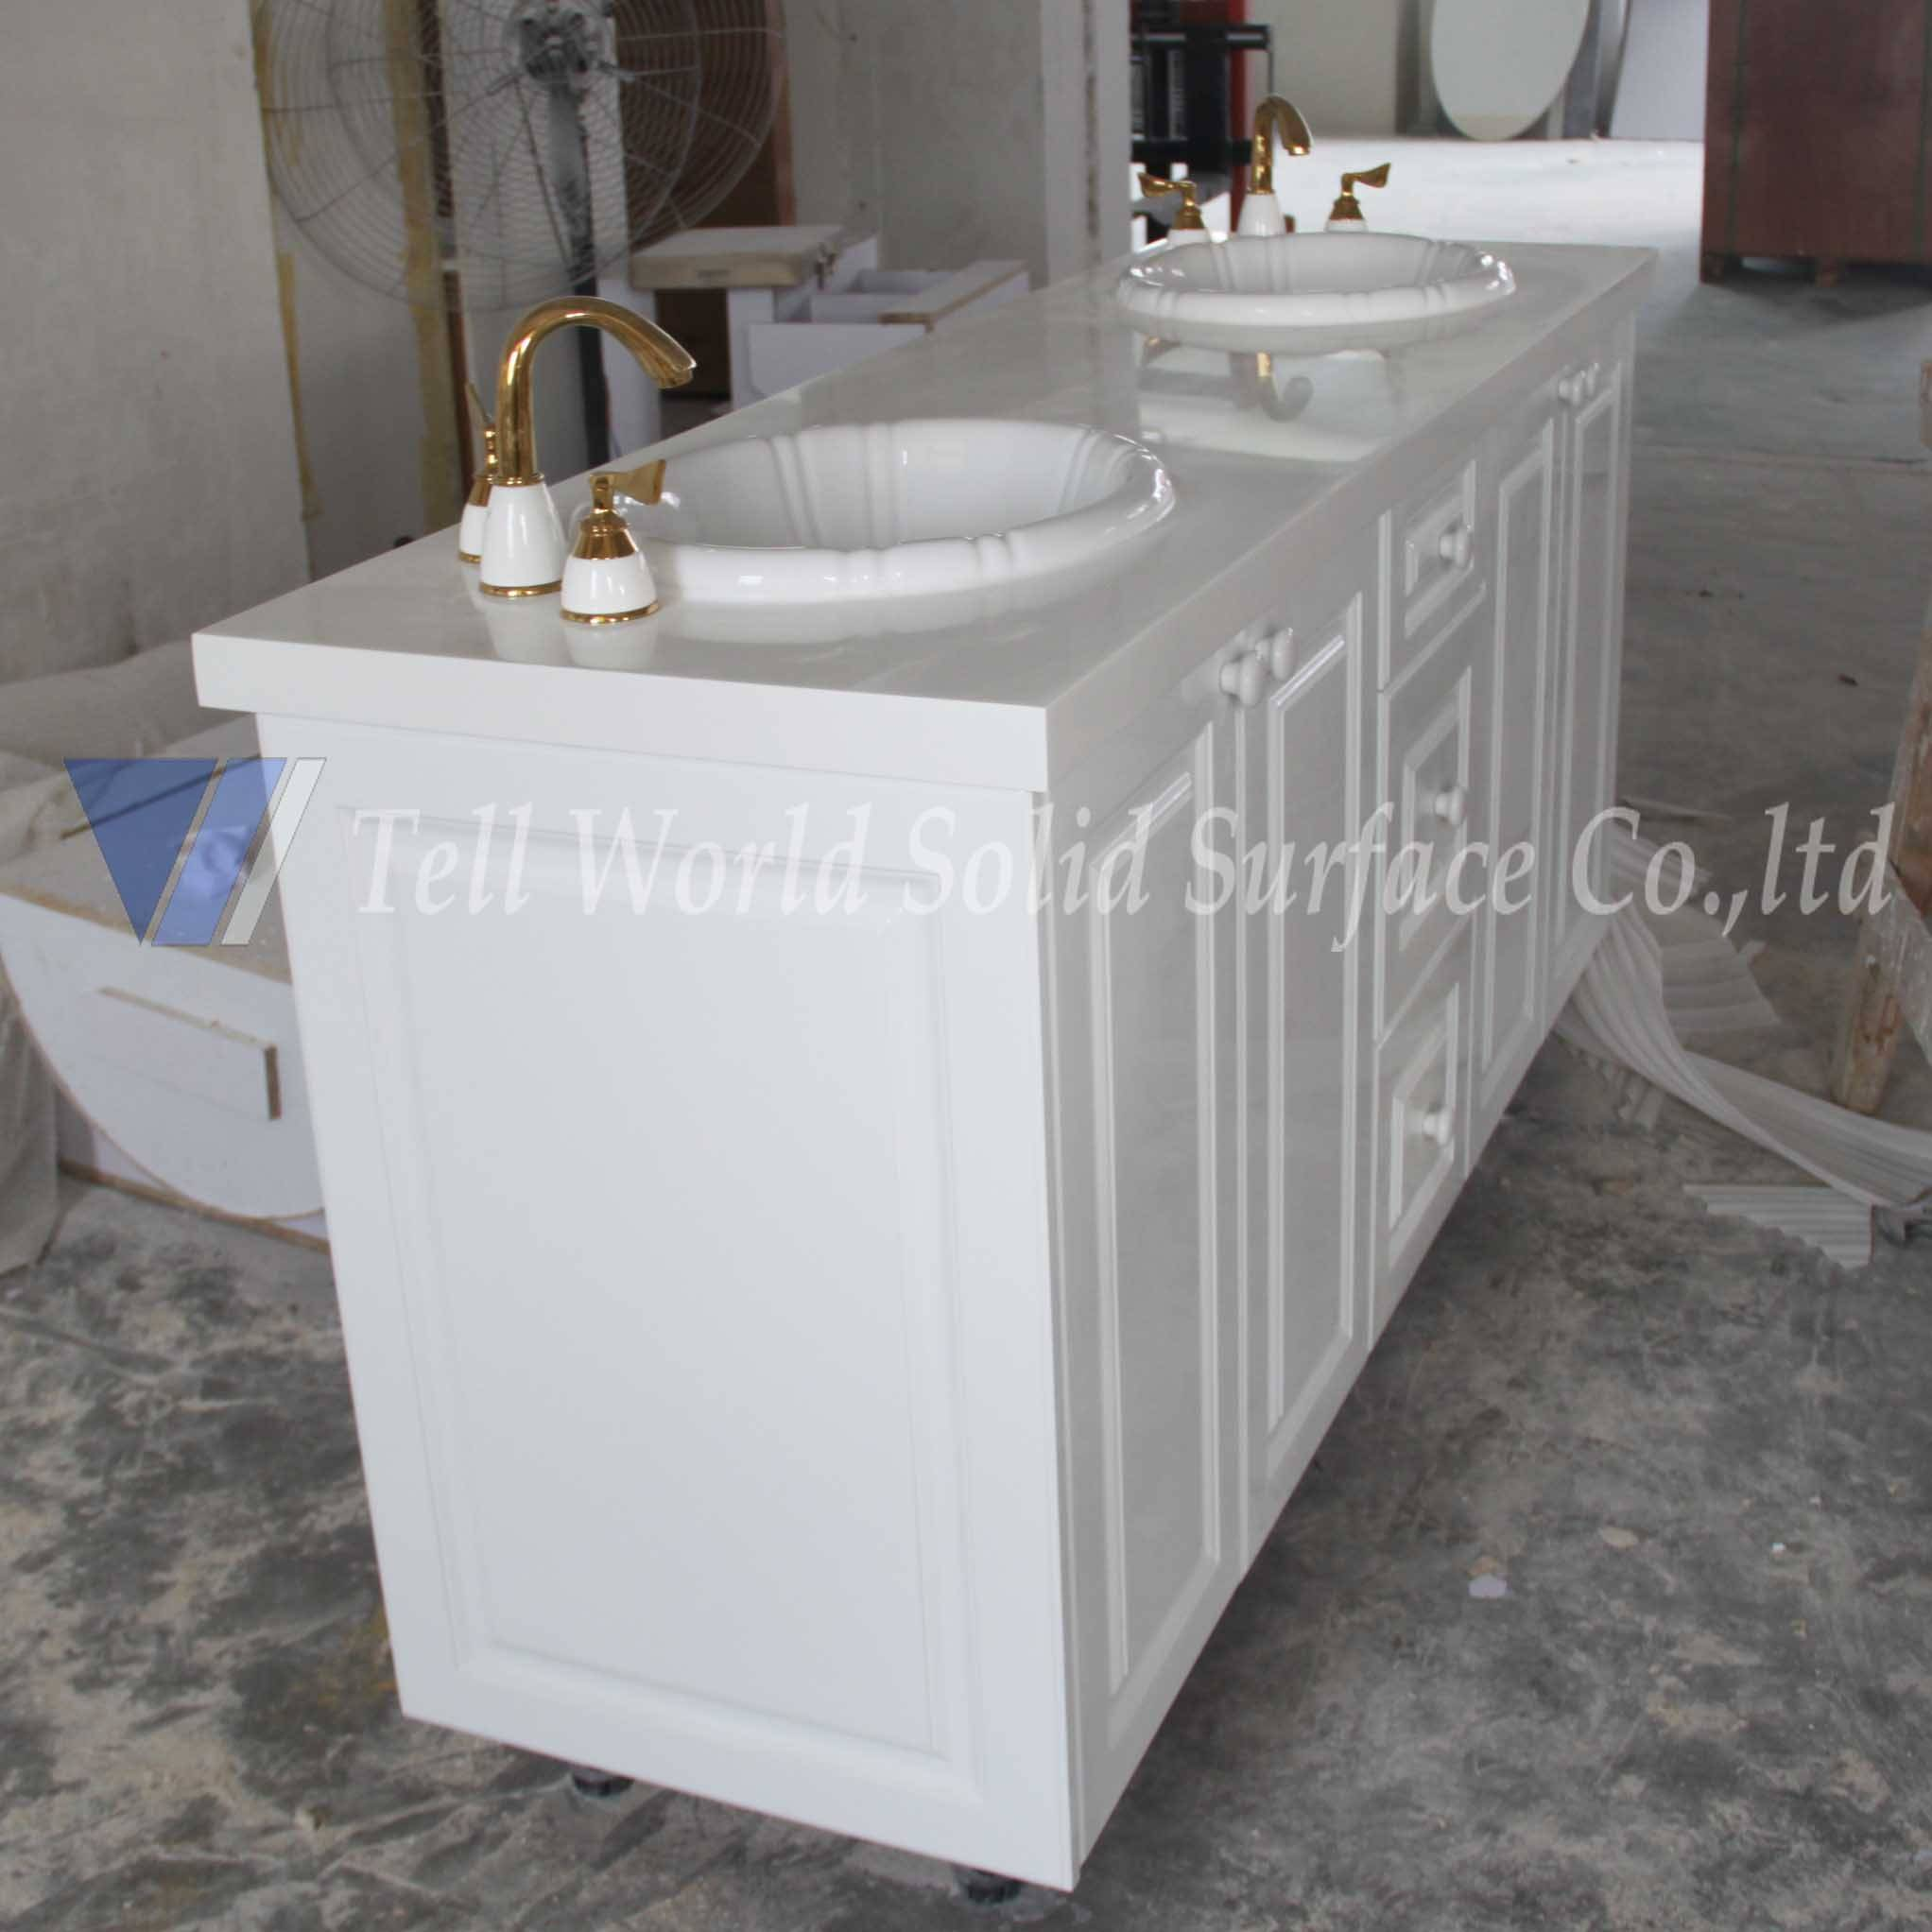 Bathroom Vanities' Top